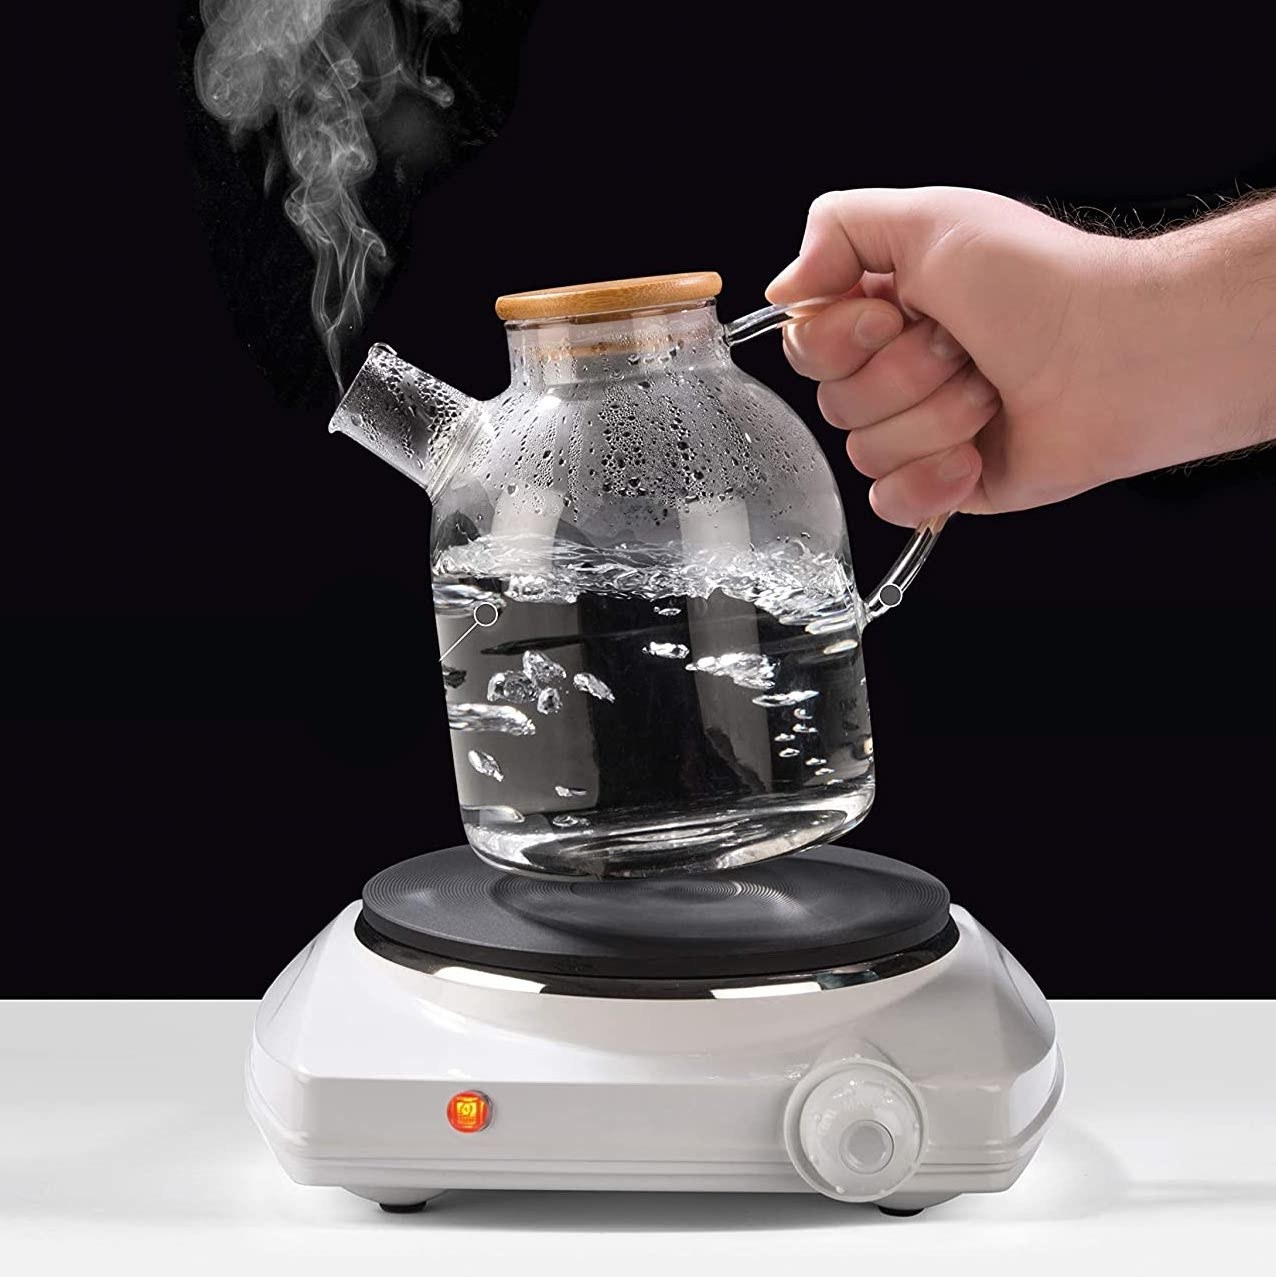 A person lifts the boiling kettle off a hot plate